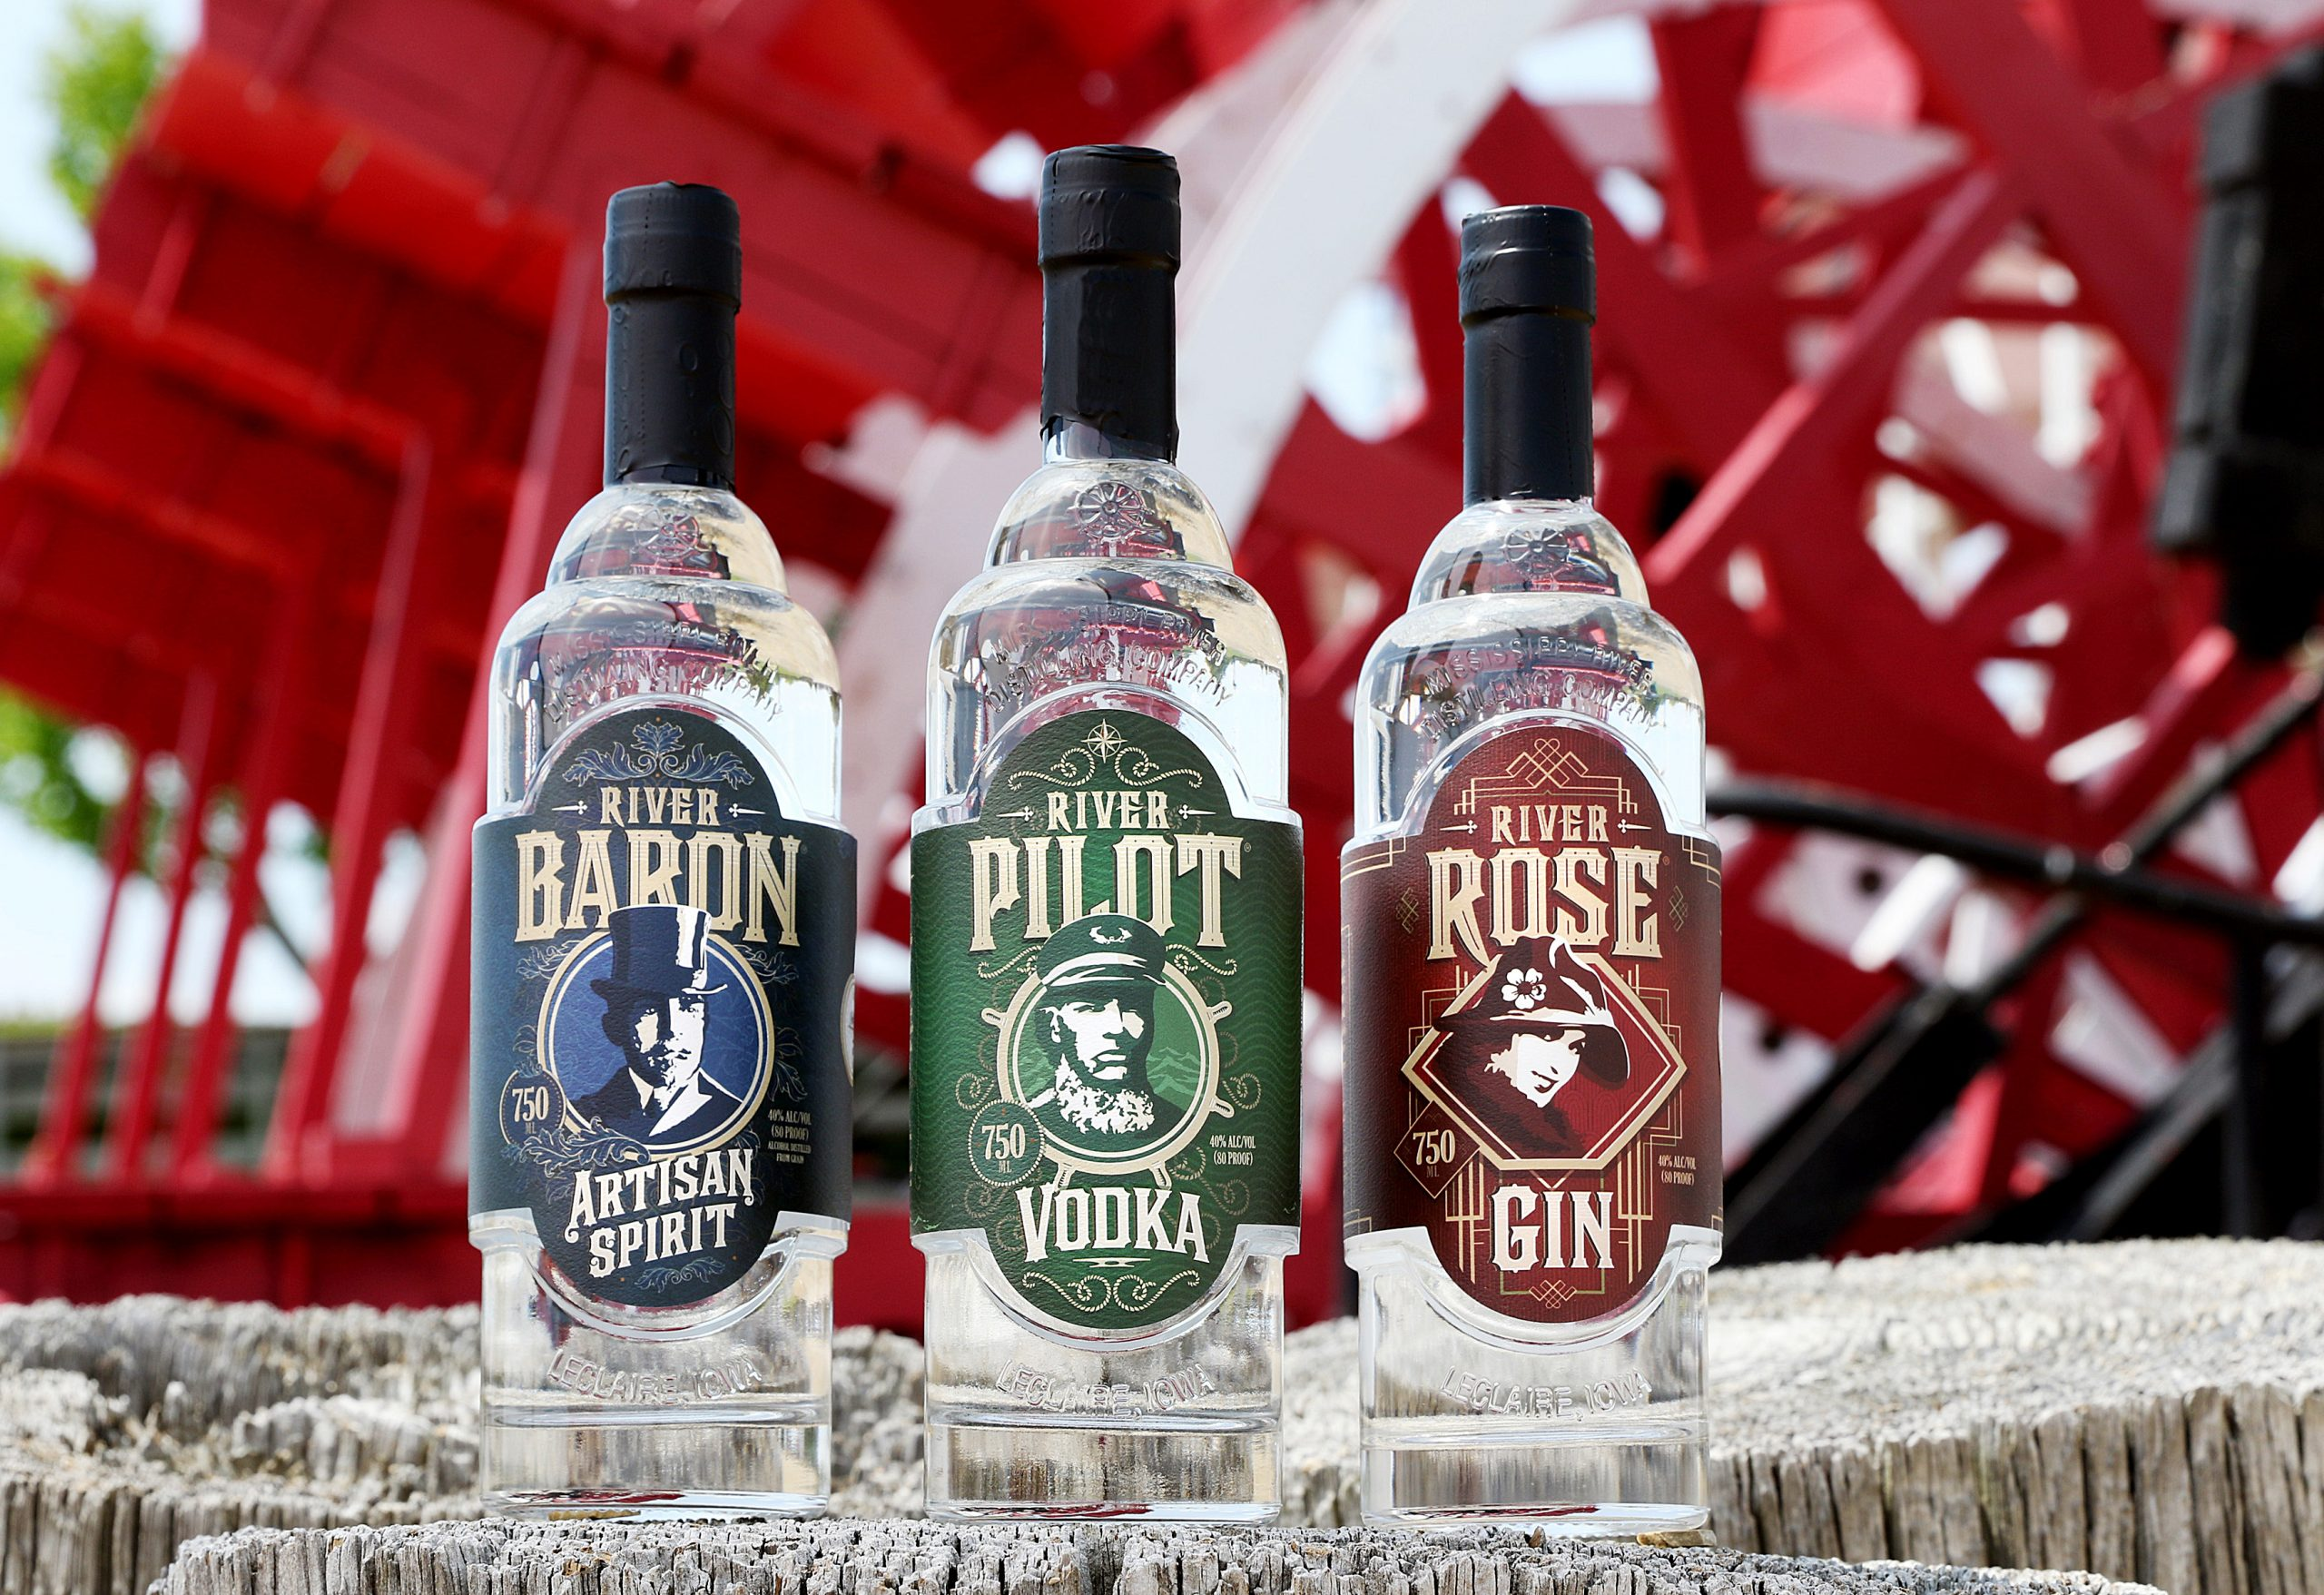 Photo of three Mississippi River Distilling Company bottles side-by-side; River Baron, River Pilot and River Rose